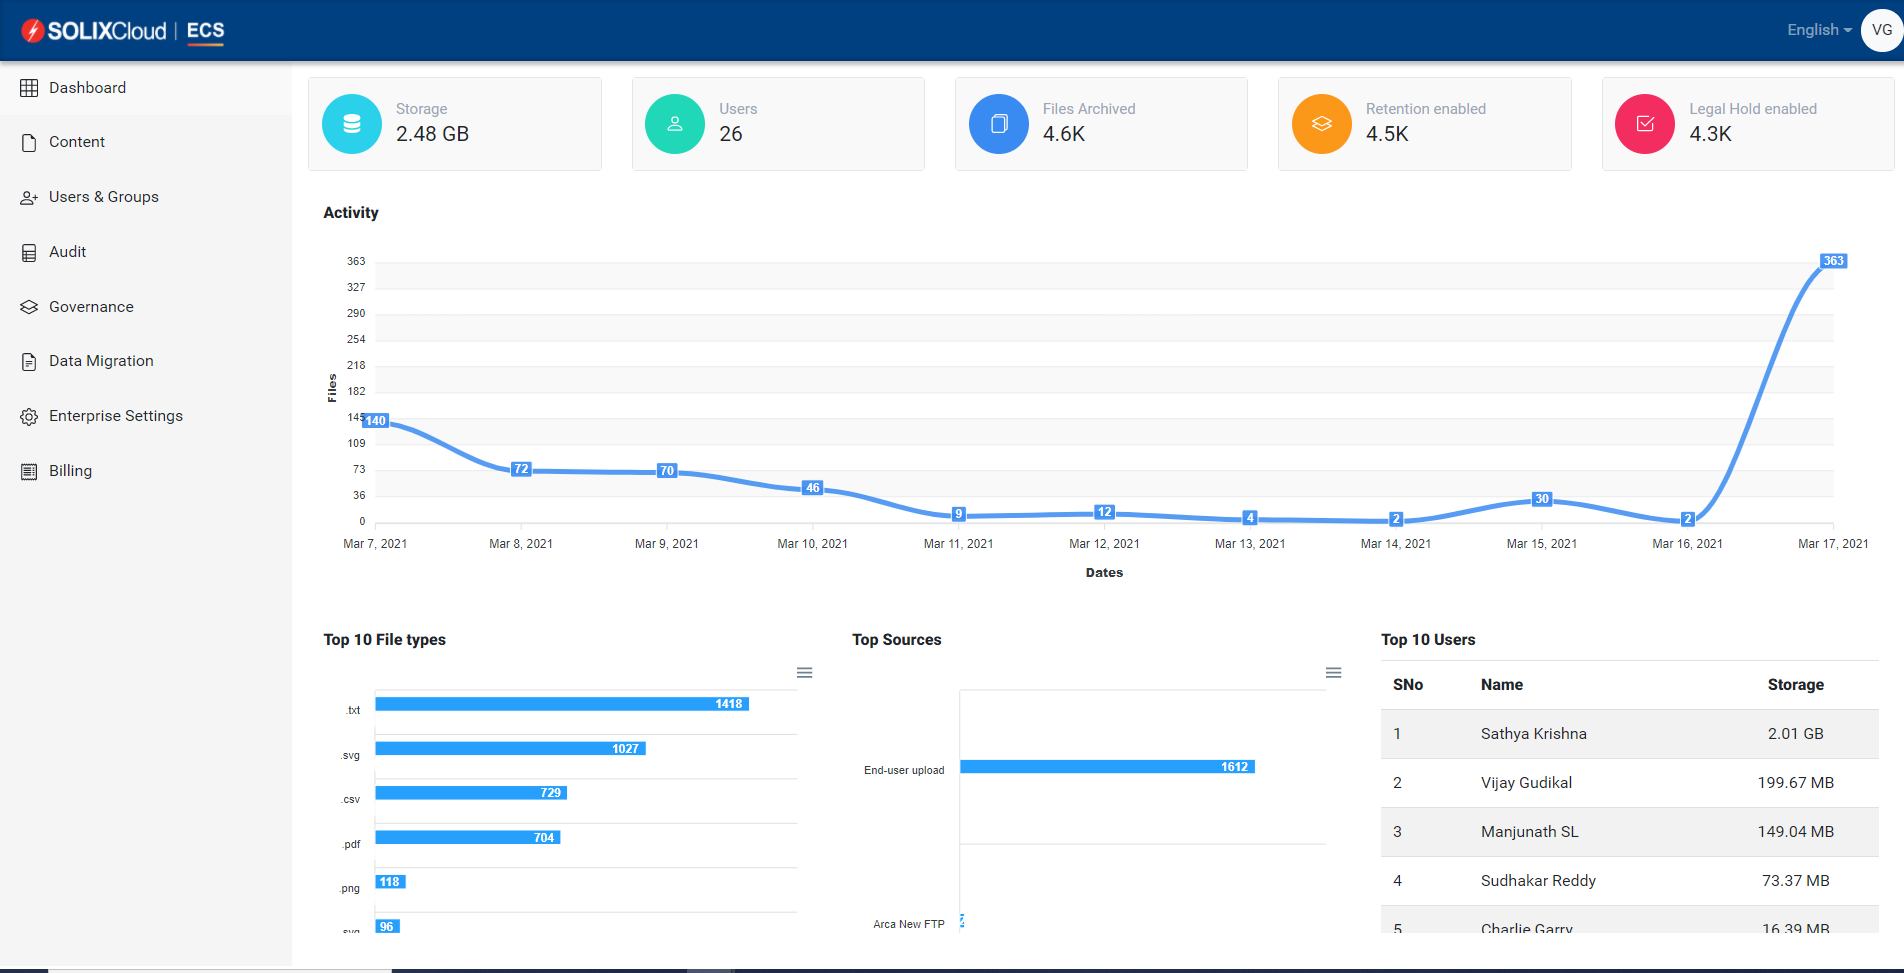 Dashboard - With centralized administration capabilities, IT and compliance teams gain enterprise-wide visibility and control over the content uploaded and accessed. User management and administrative roles further bolster data security.